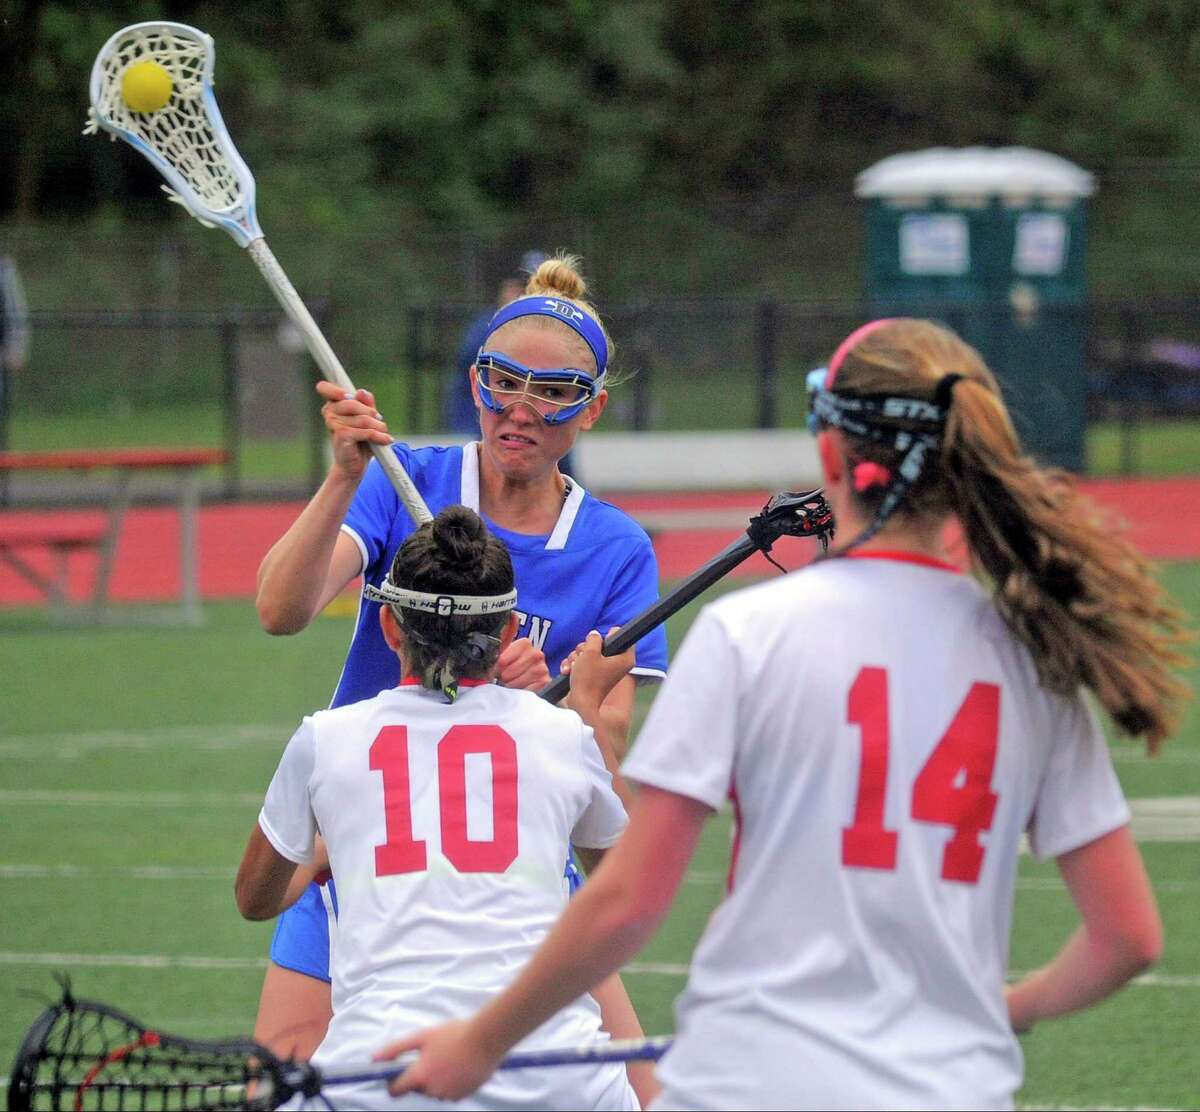 Darien's Katherine Cronin scores while defended by Greenwich's Romy Villemure and Kathryn Harford